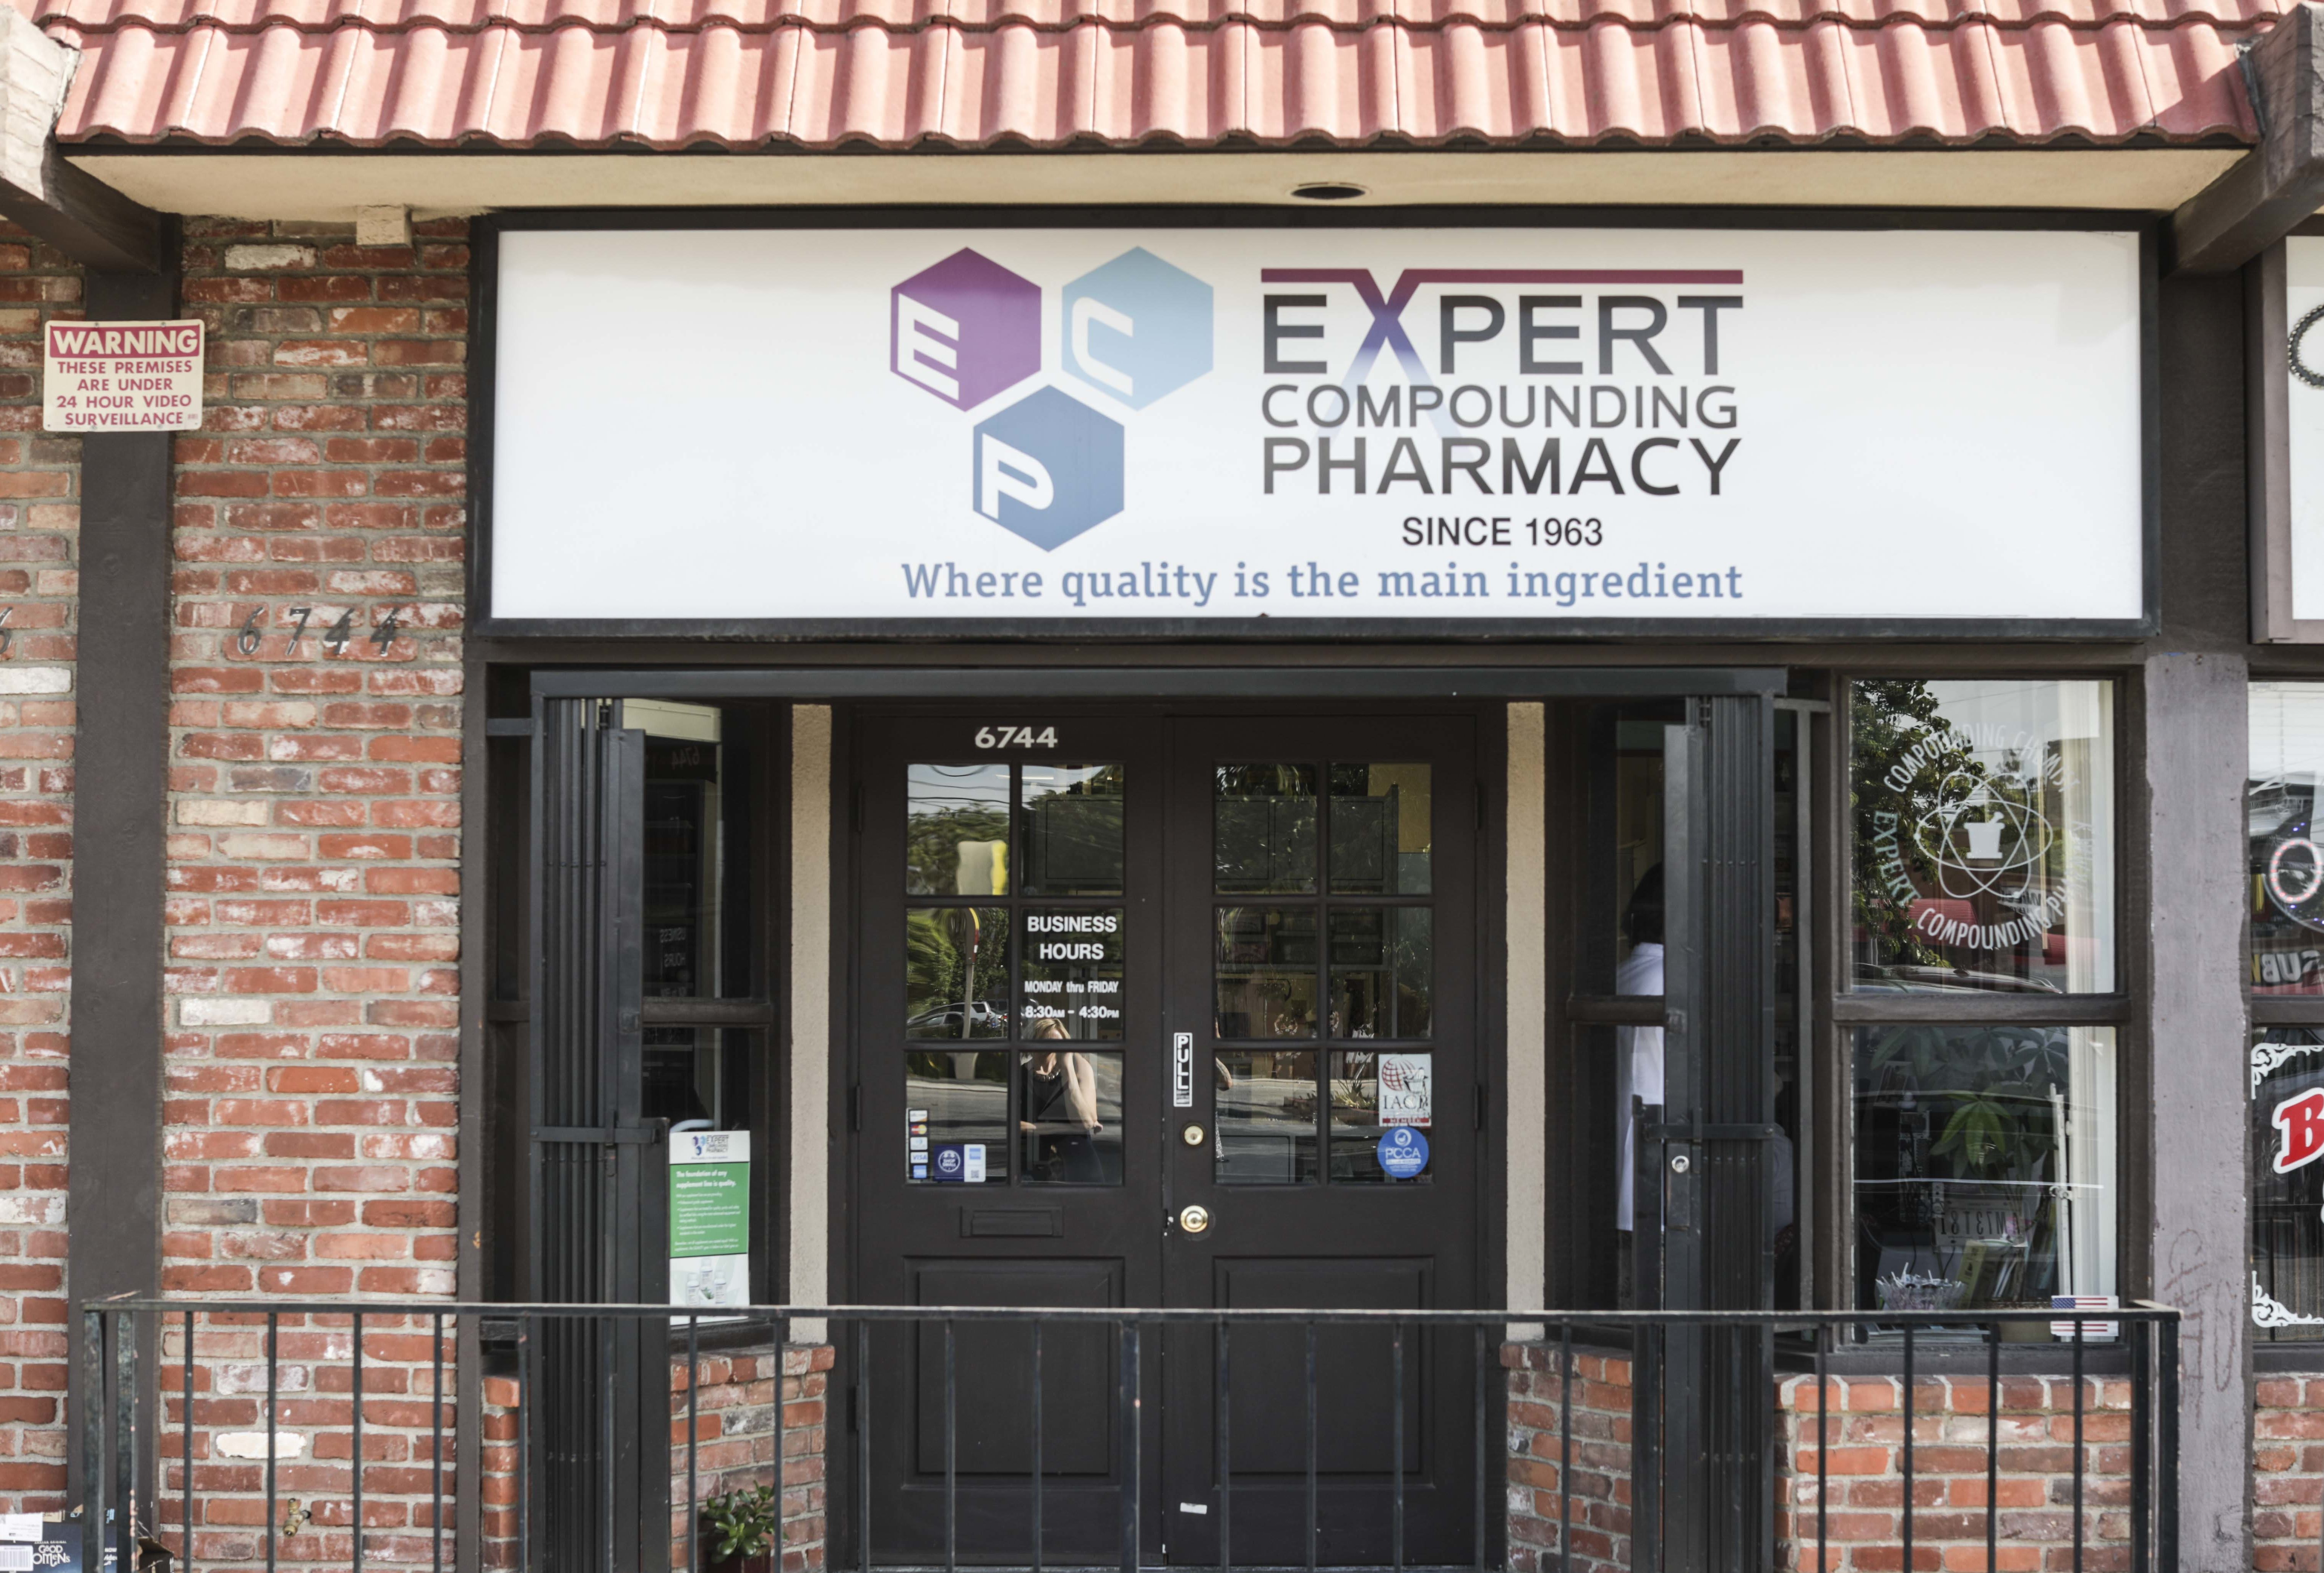 Contact Expert Compounding Pharmacy